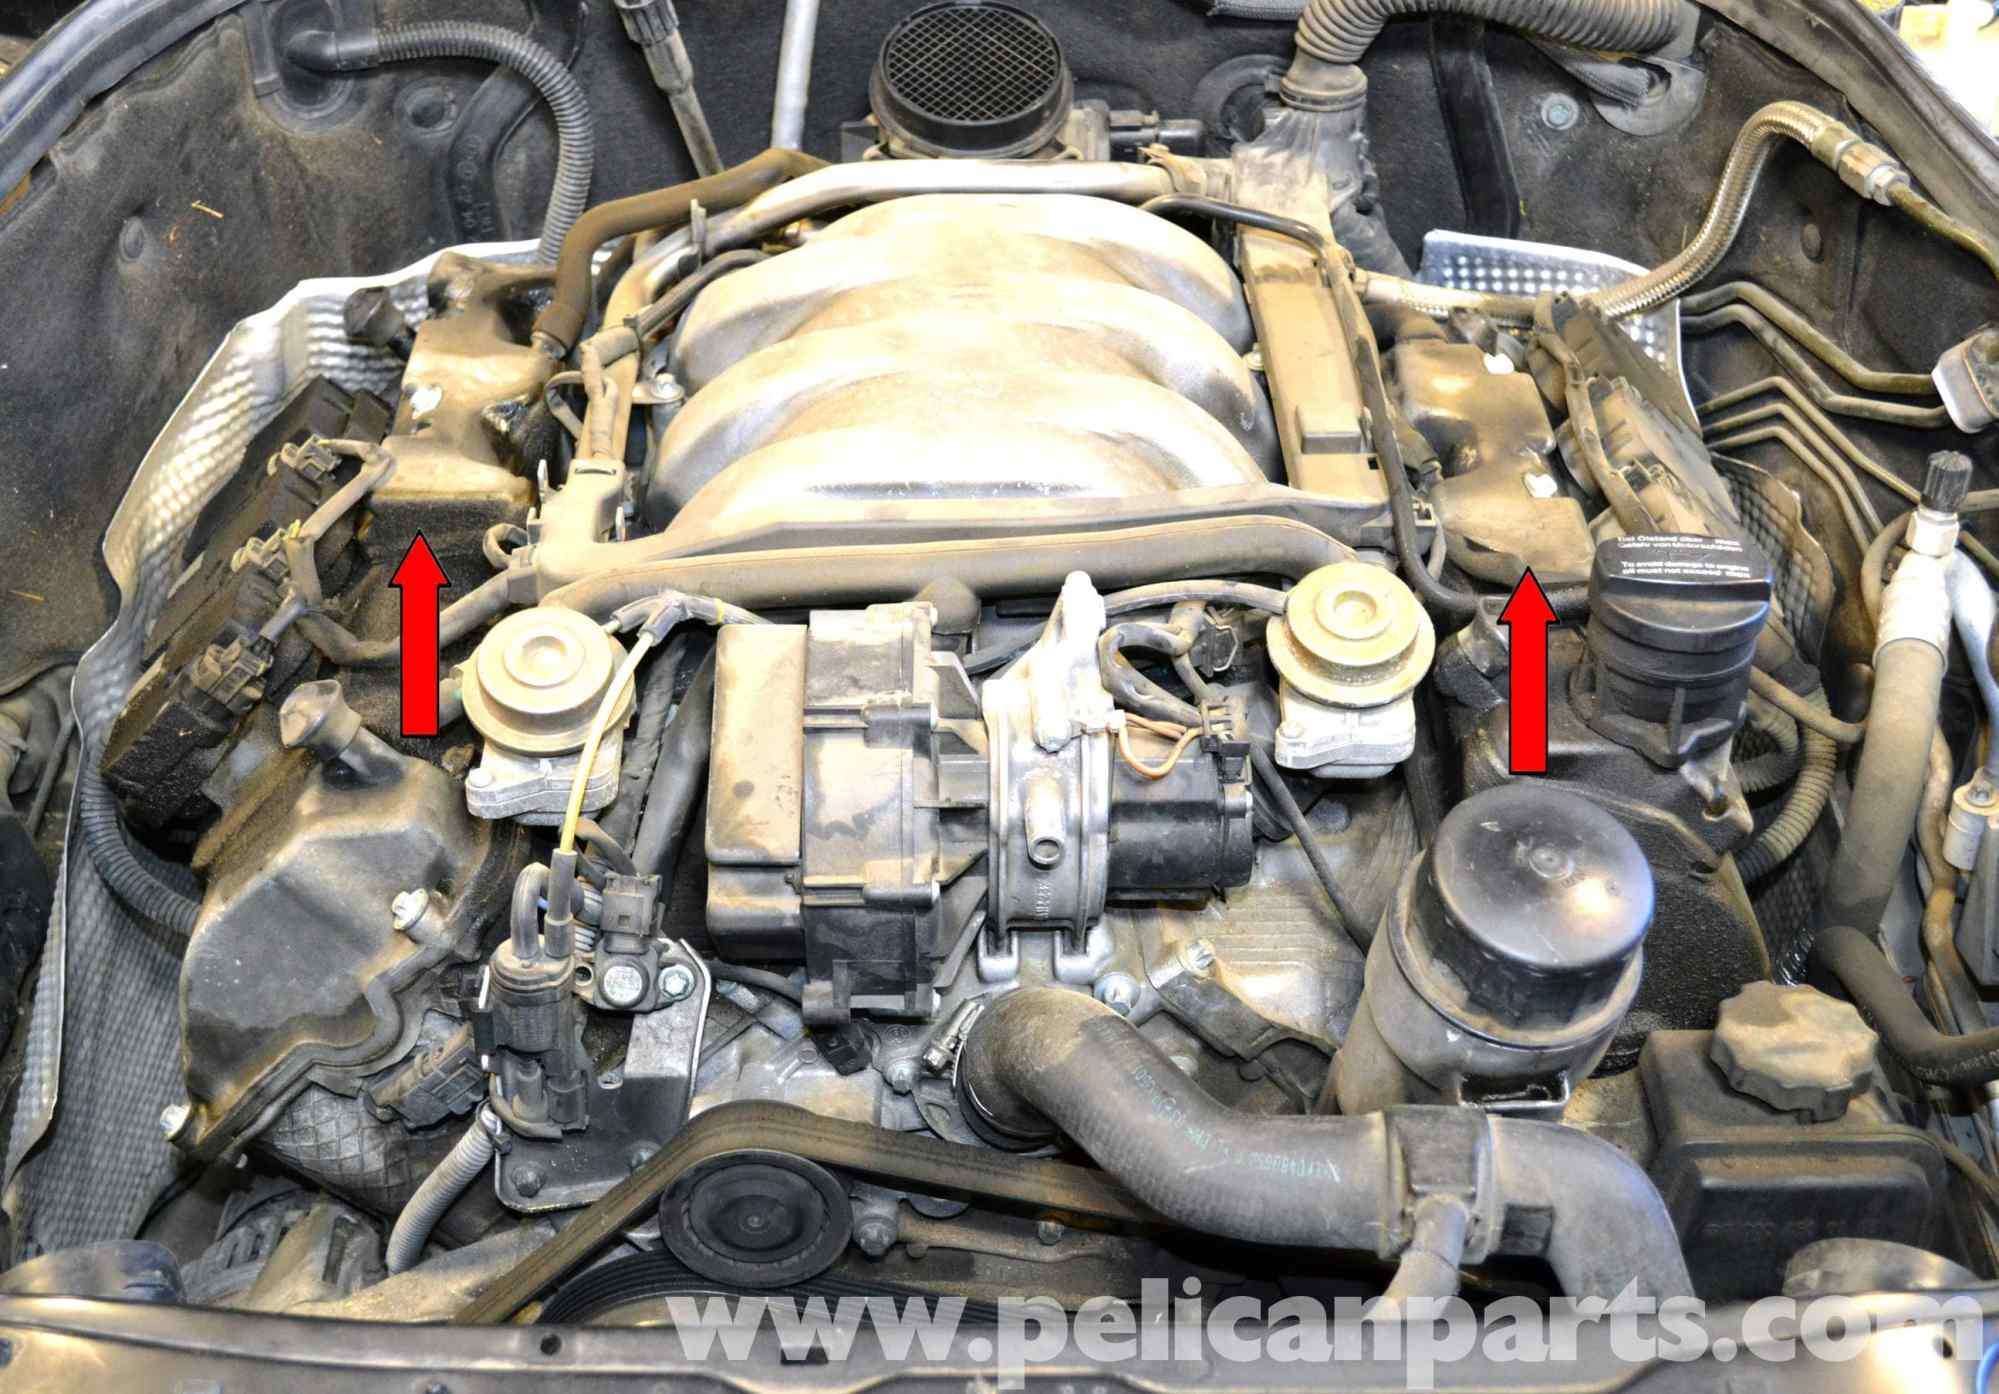 hight resolution of e320 engine diagram schema wiring diagram database mercedes benz 2003 e320 engine diagram